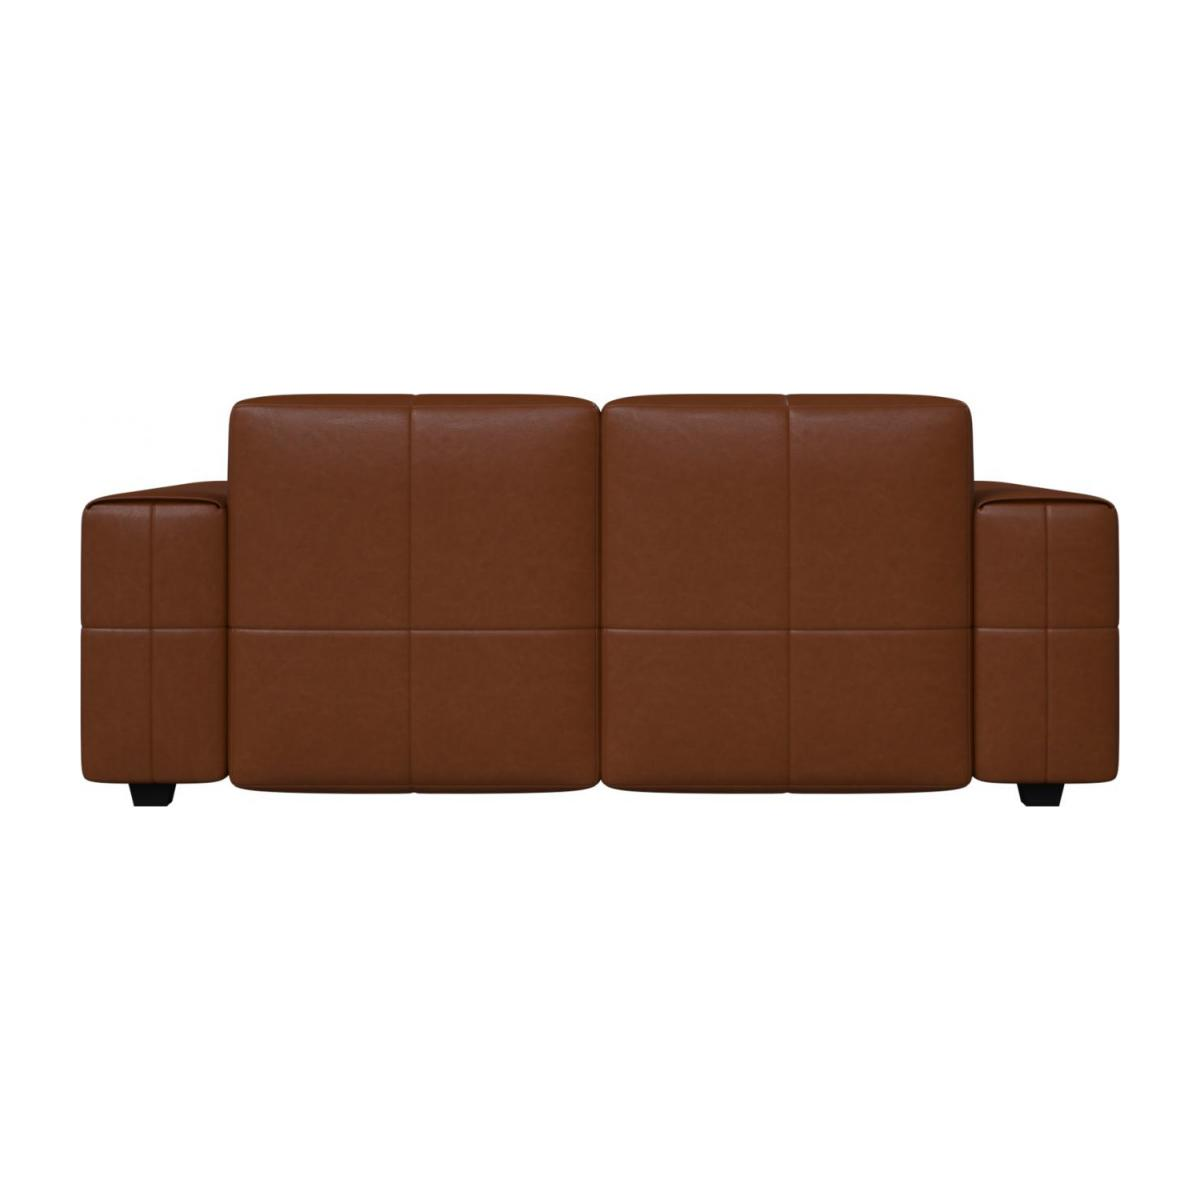 2 seater sofa in Vintage aniline leather, old chestnut n°3